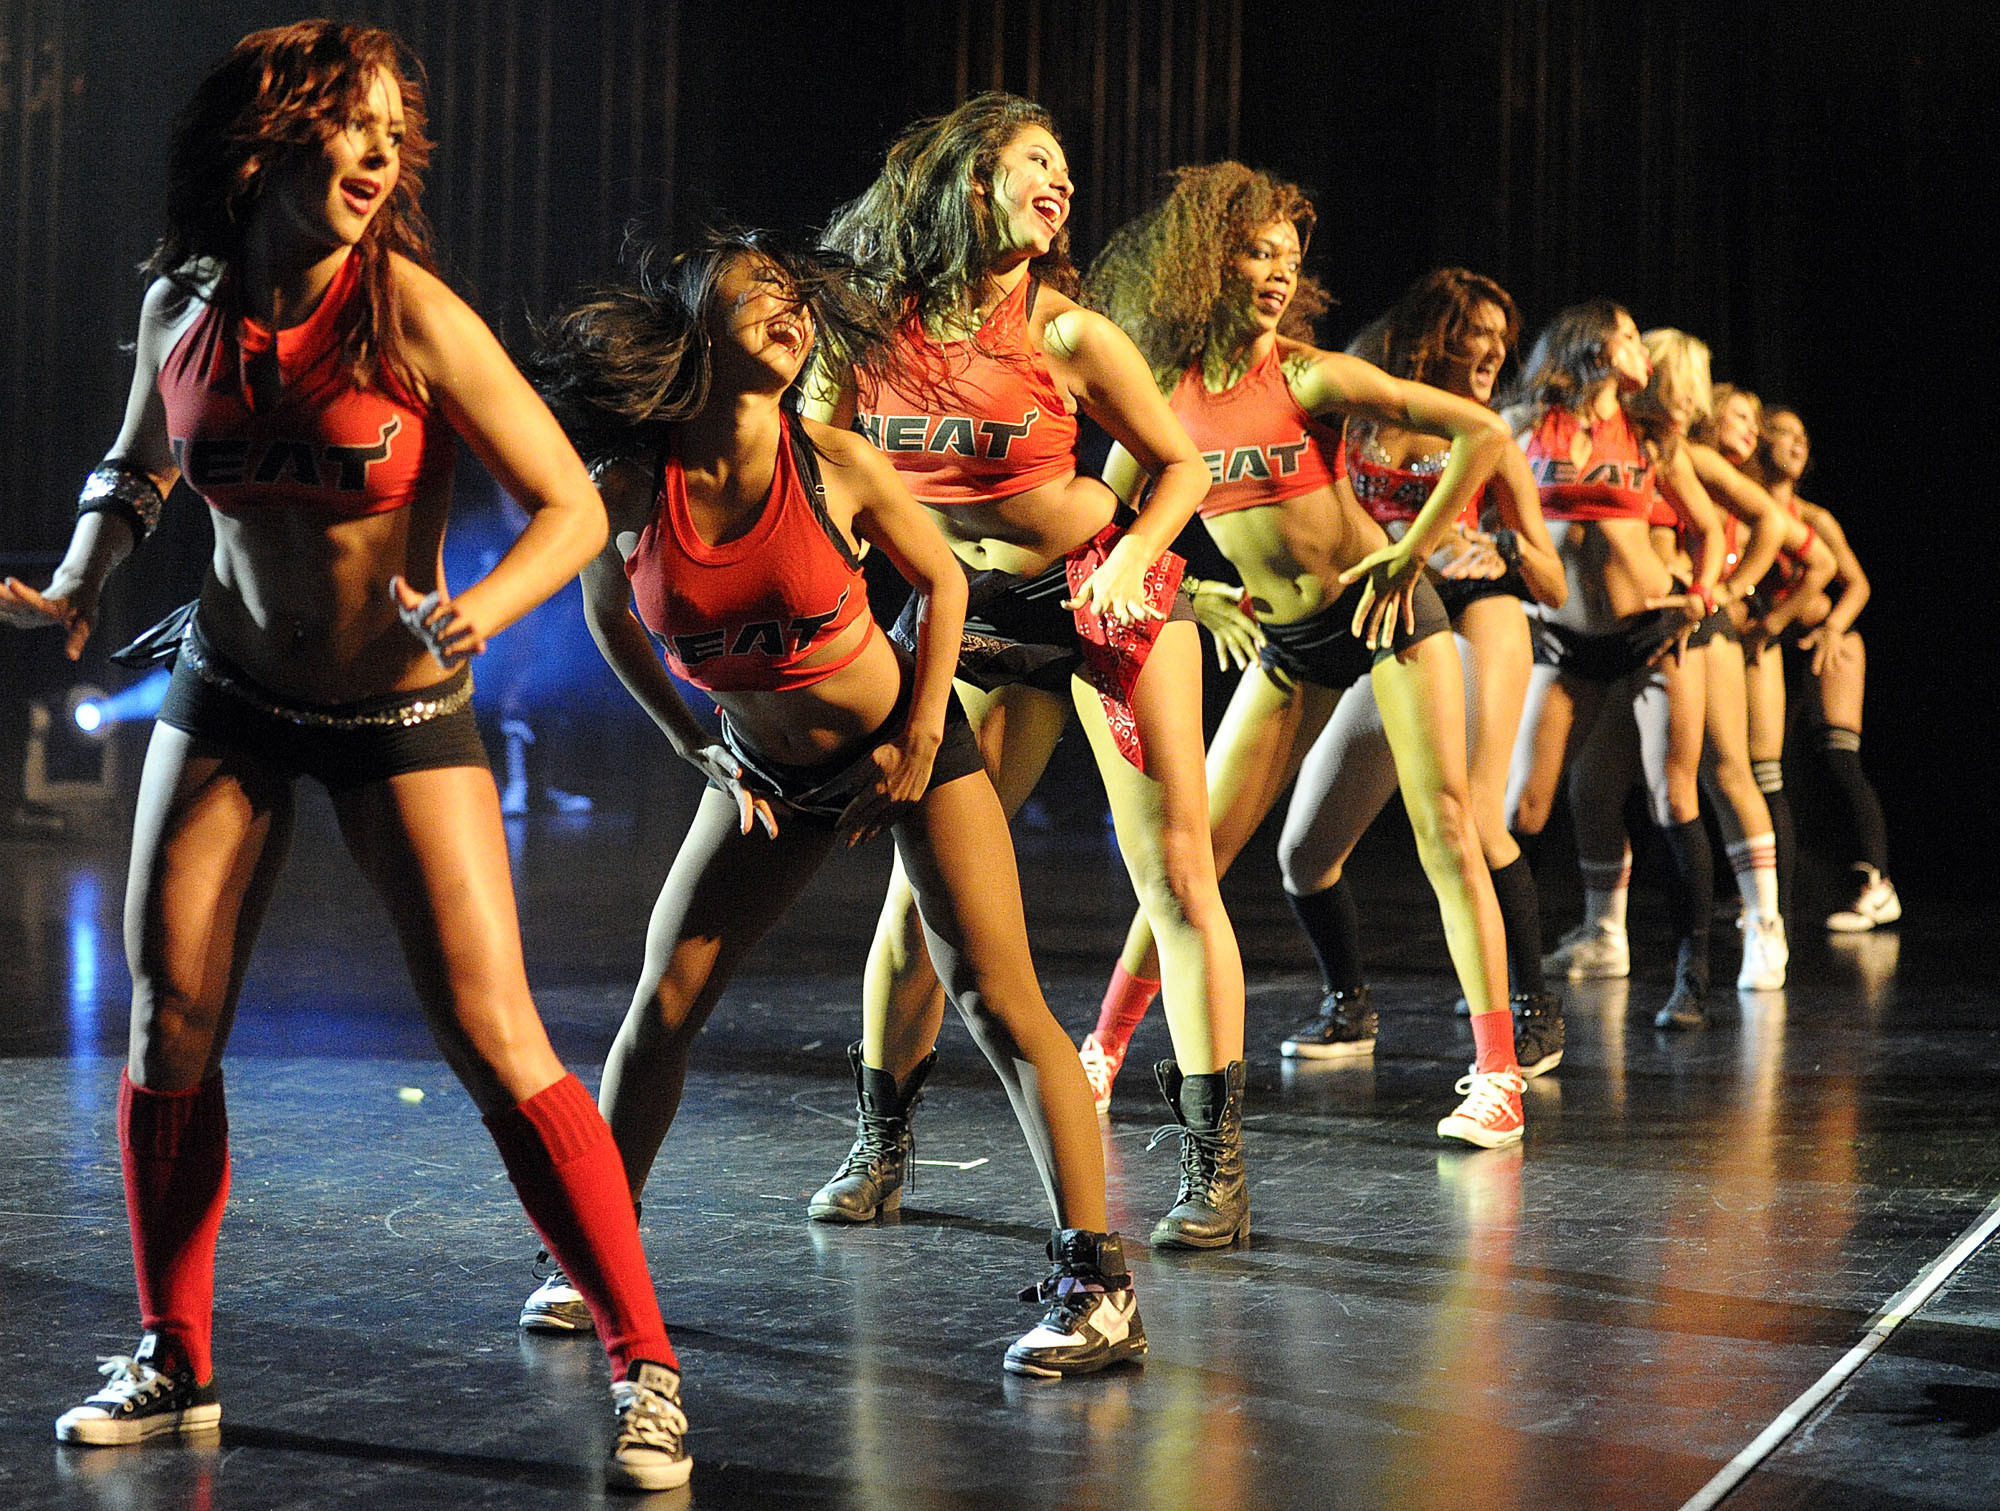 Heat Dance Team Selected - Final audition